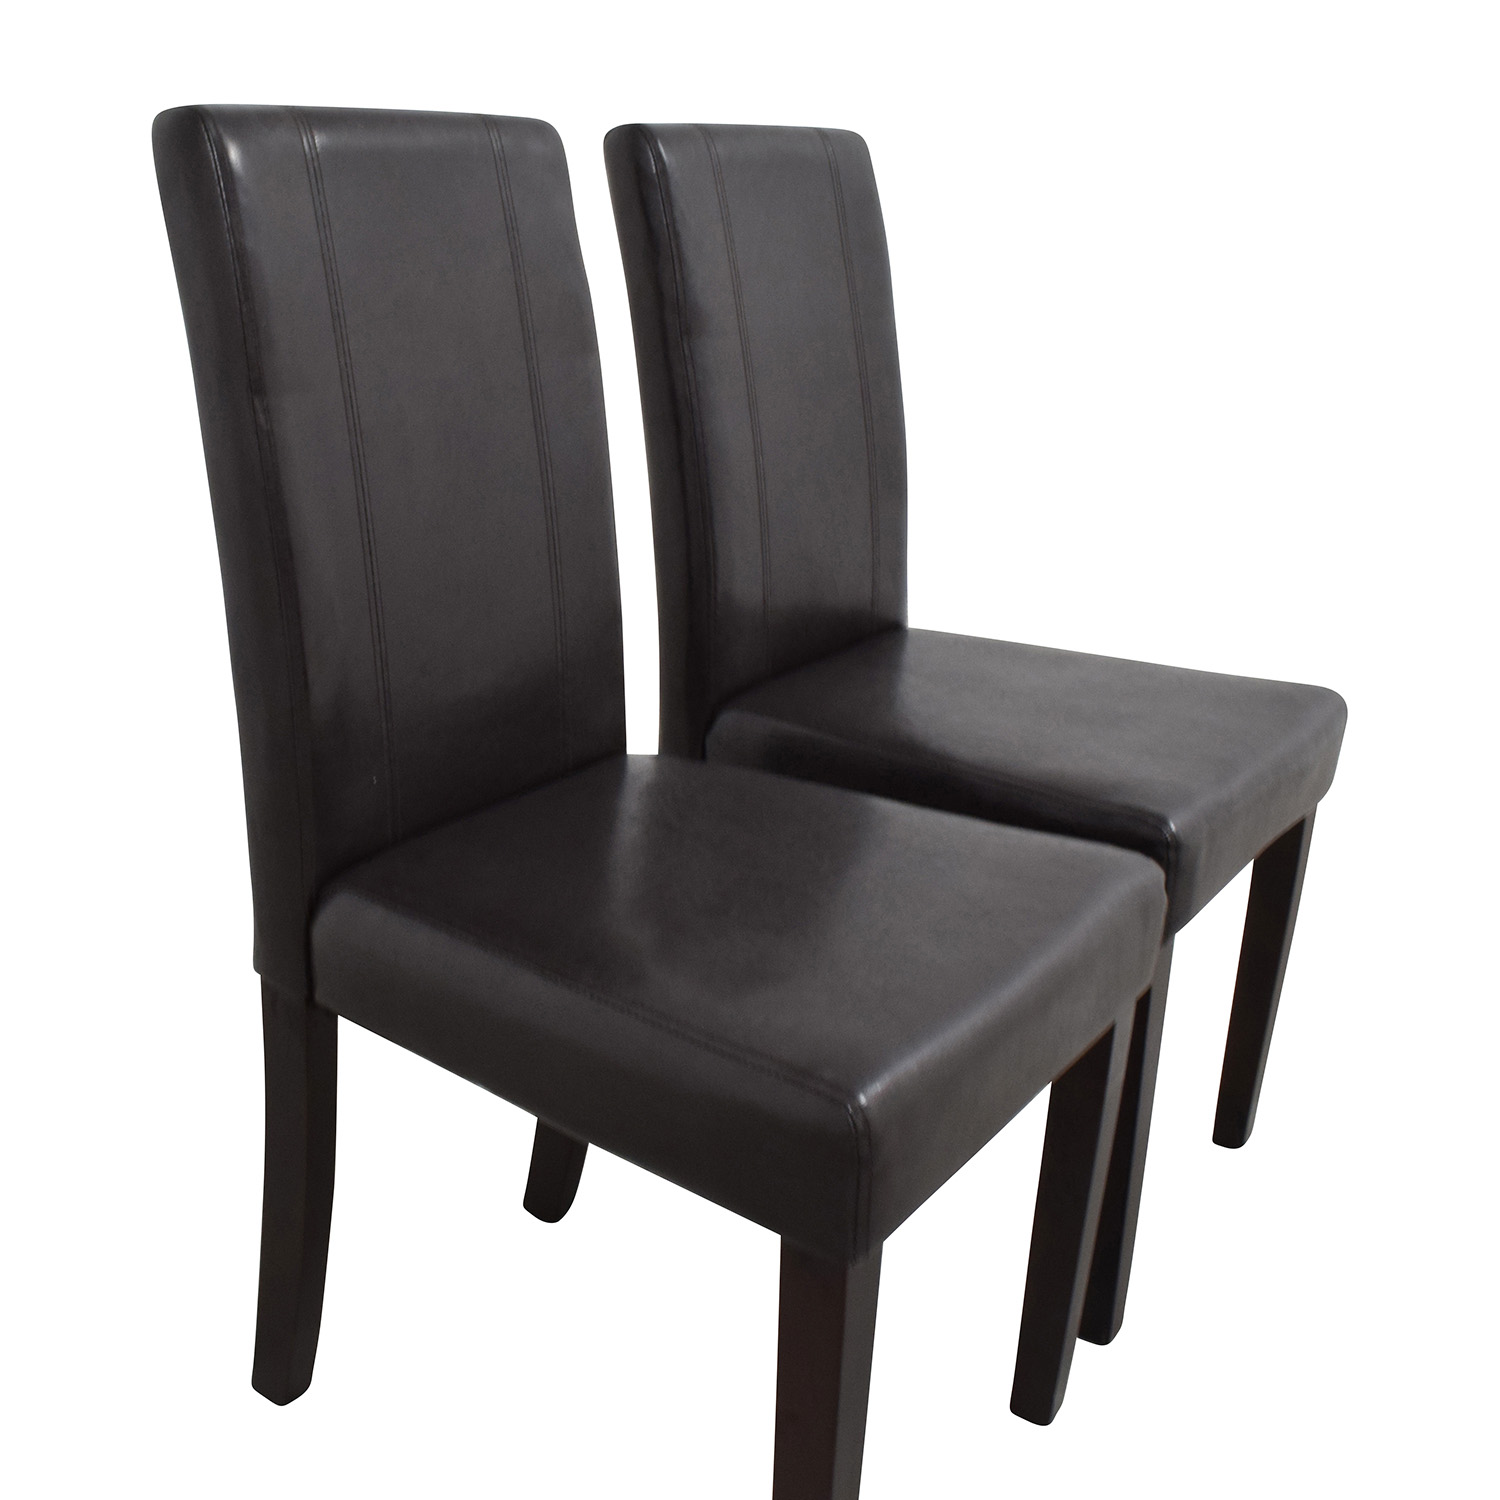 Roundhill Roundhill Solid Wood Leatherette Padded Parson Chairs